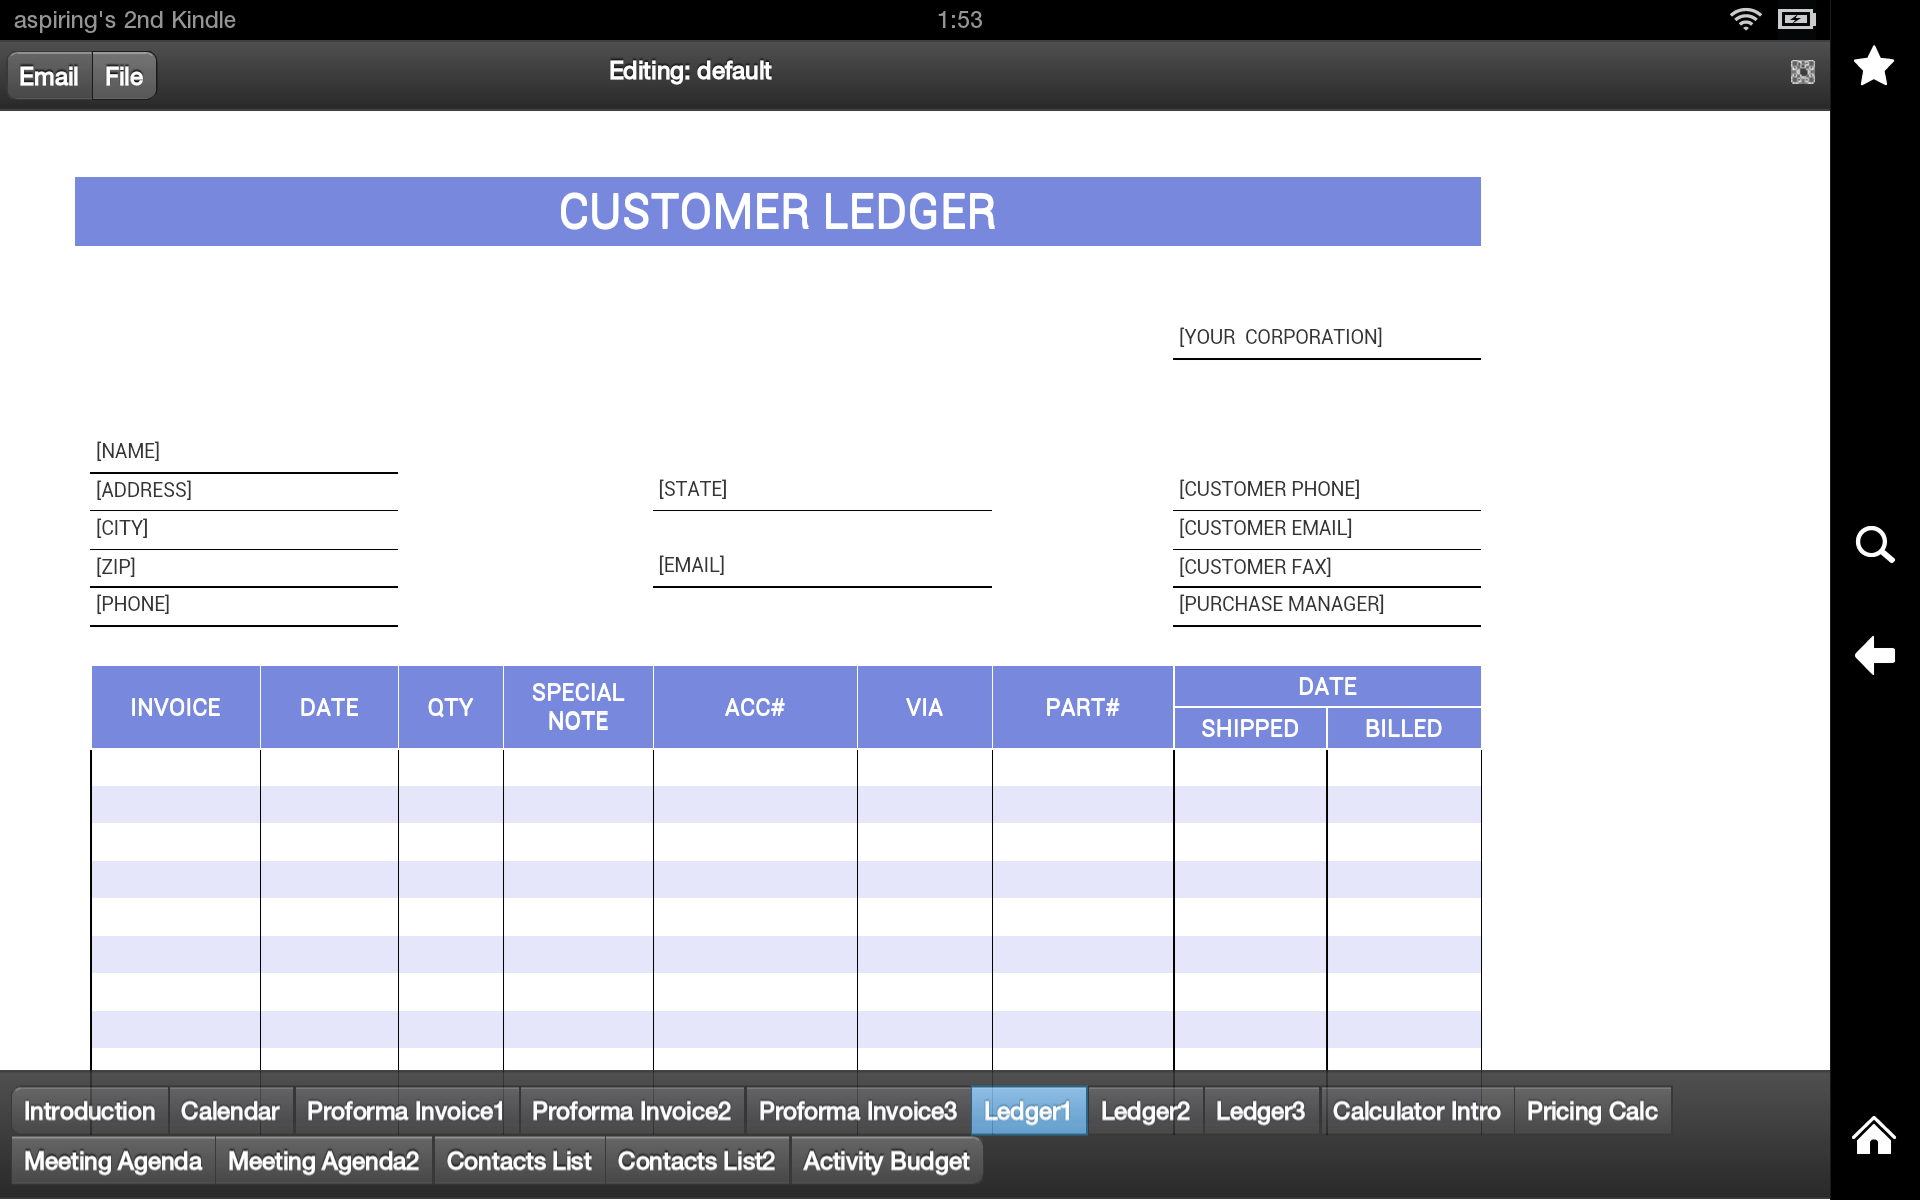 Amazoncom Proforma Invoice Pro Appstore For Android - Free proforma invoice template pay amazon store card online